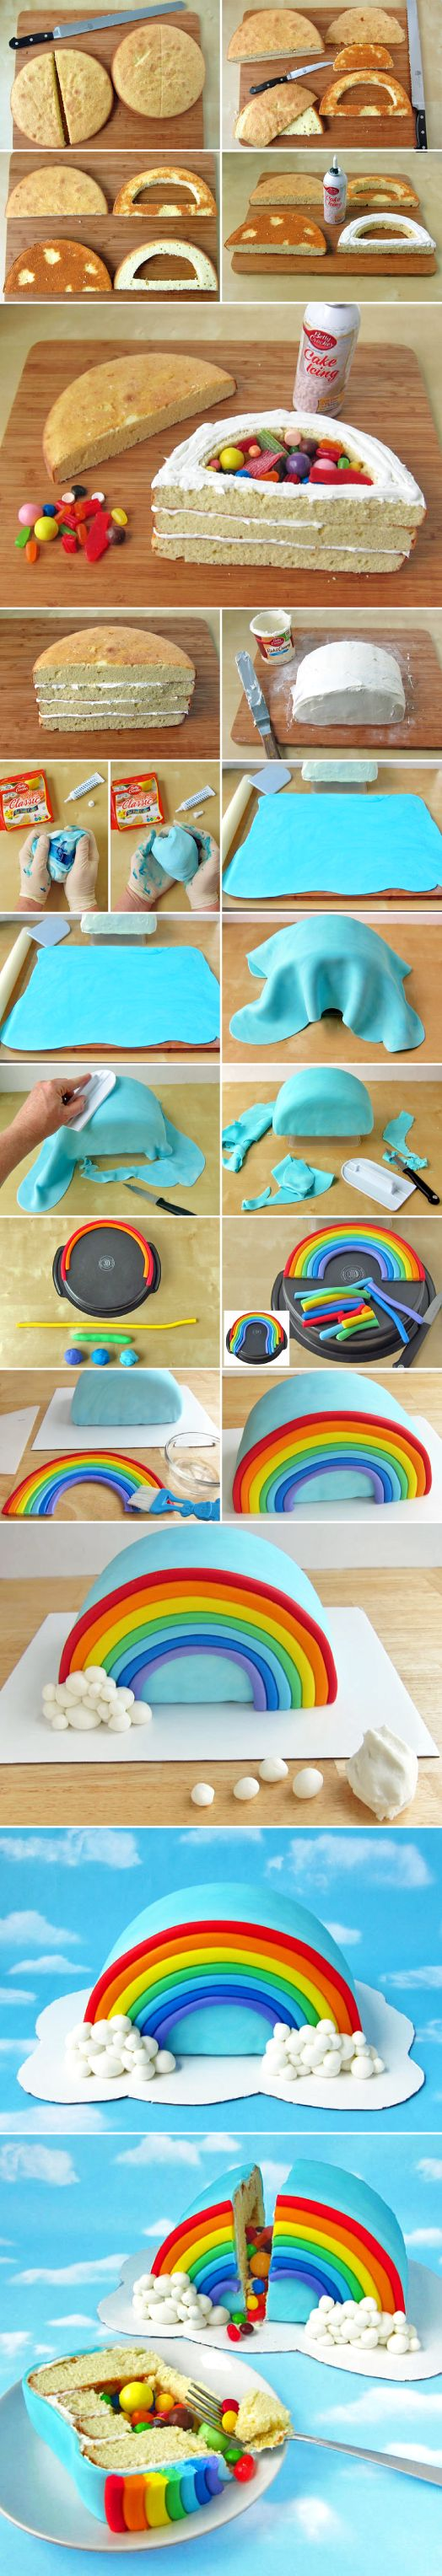 Rainbow-cake-sorpresa. I'm definitely gonna try this one for my bro. I think he'll love it when I use nothing but skittles inside eeeeehhhhhhh